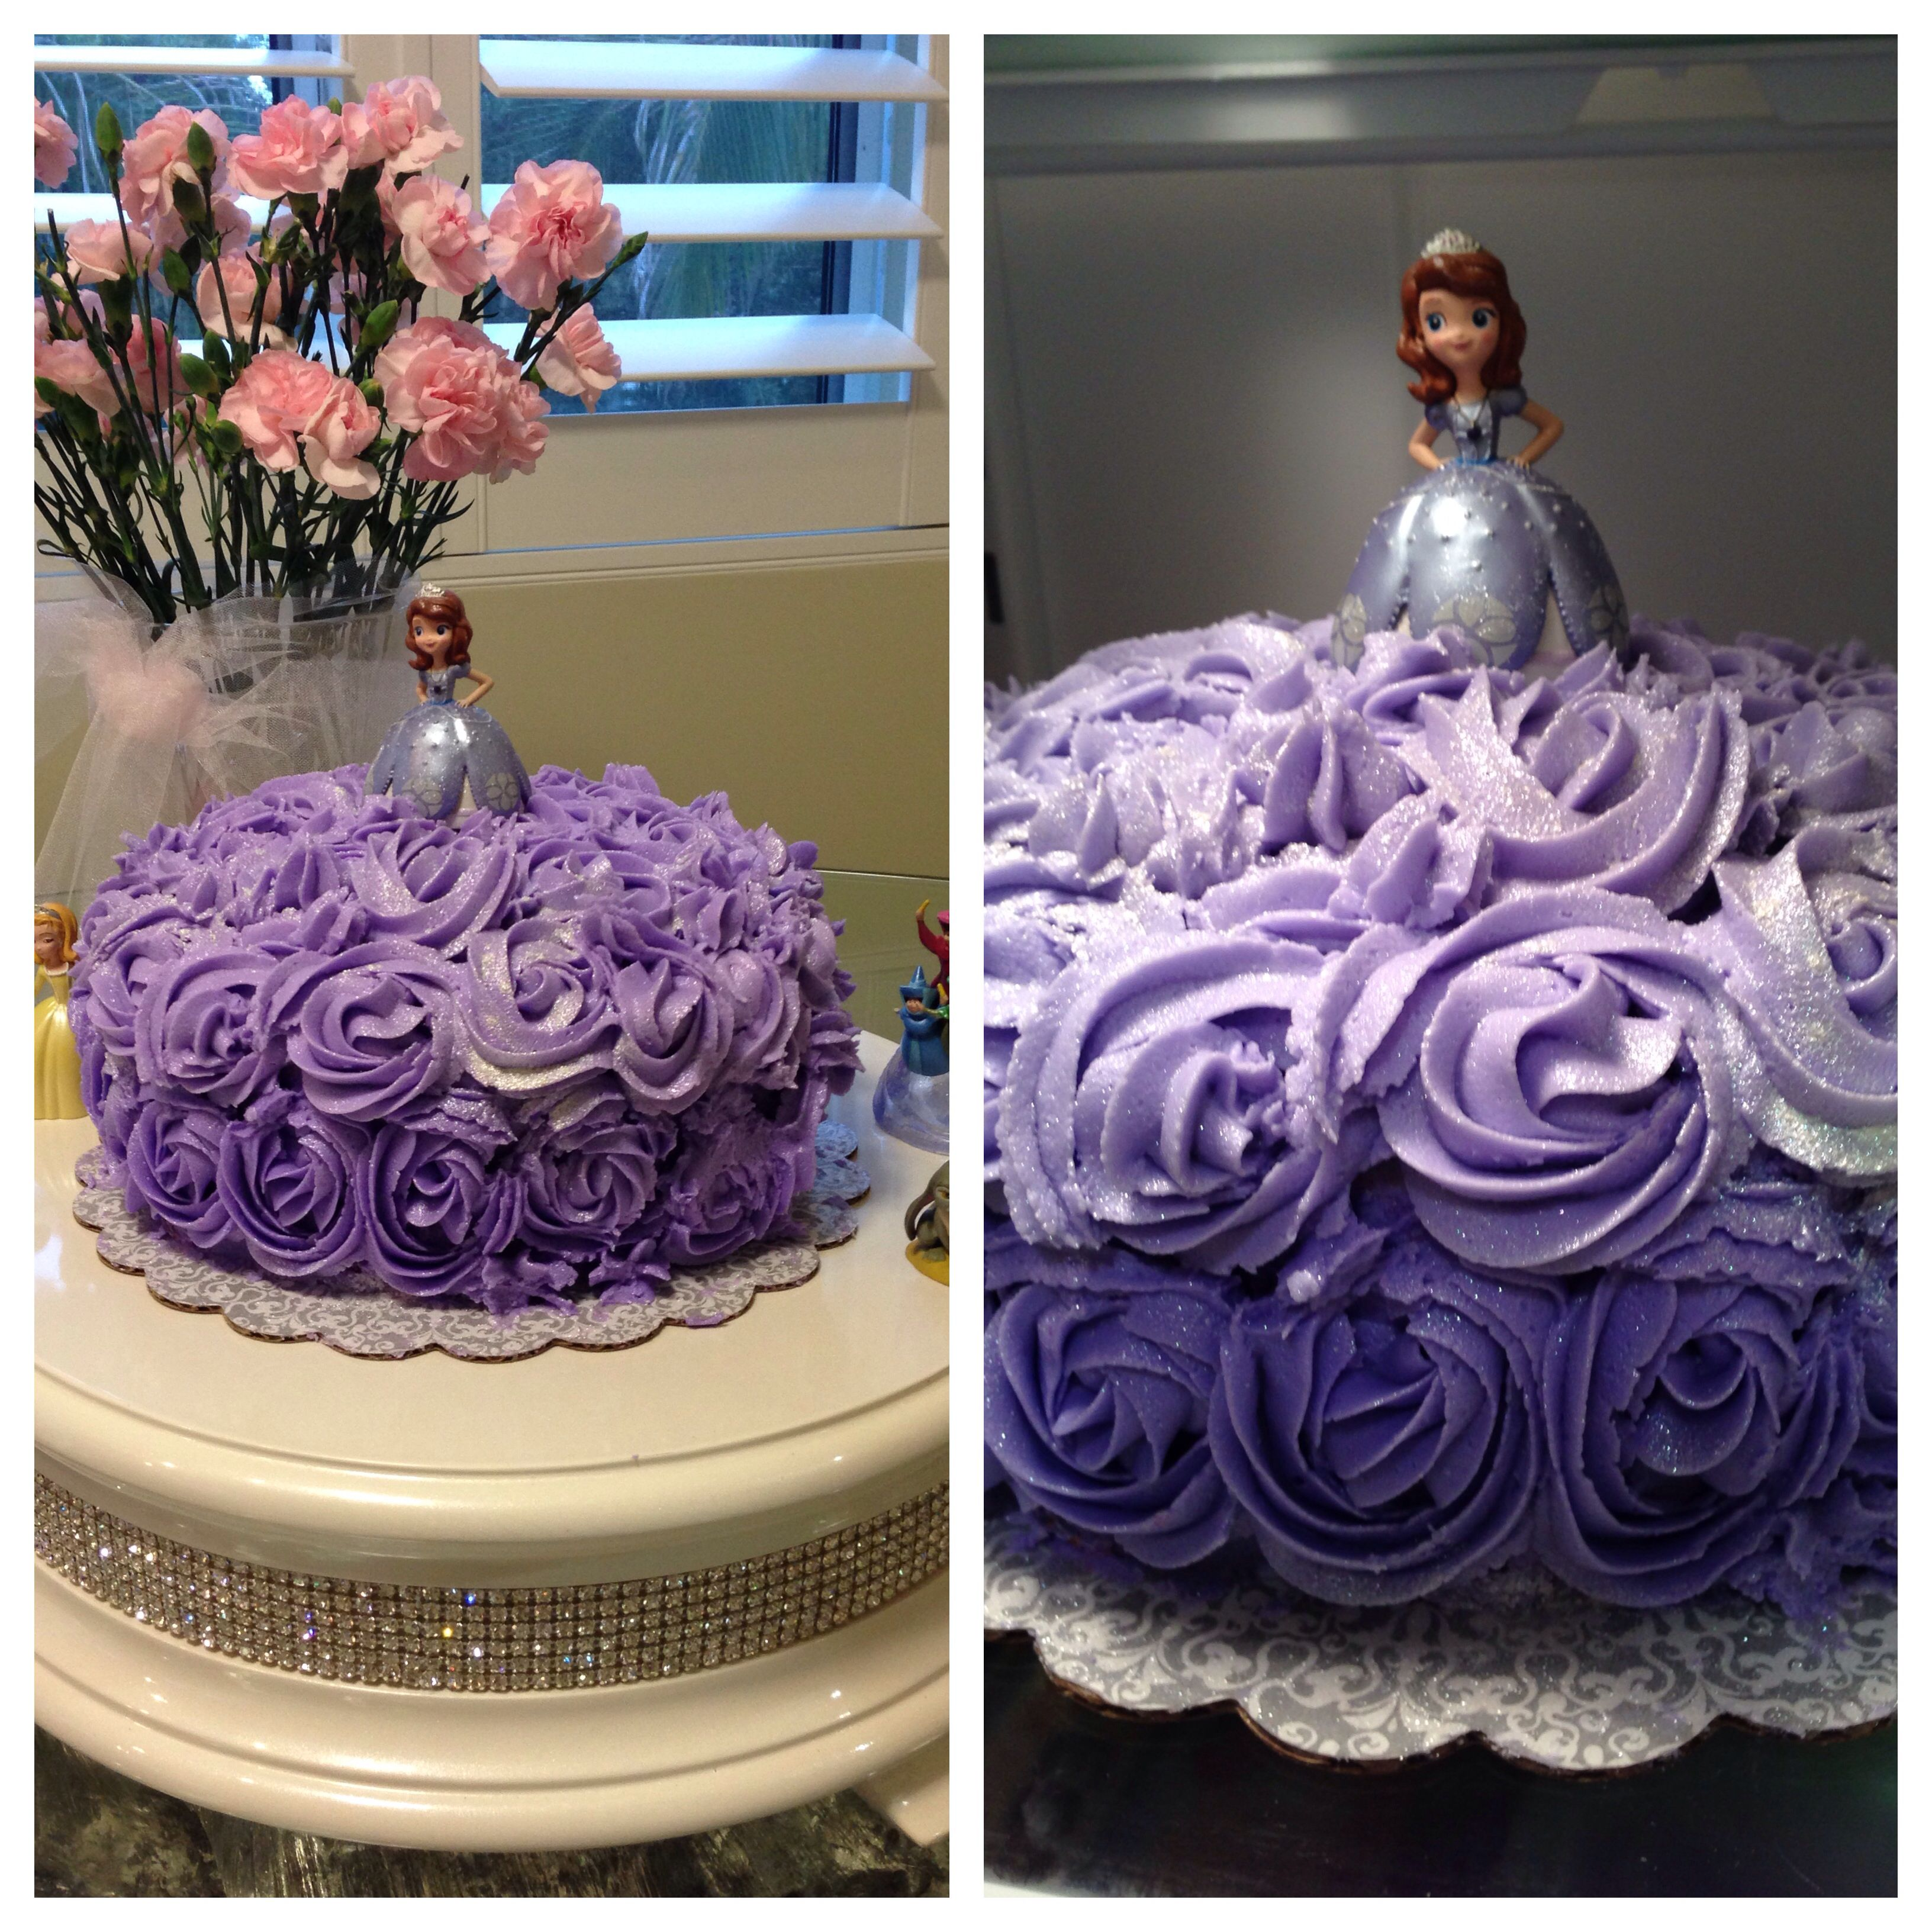 Sofia The First Cake Design Goldilocks : Sofia the first cake Celebrations Pinterest